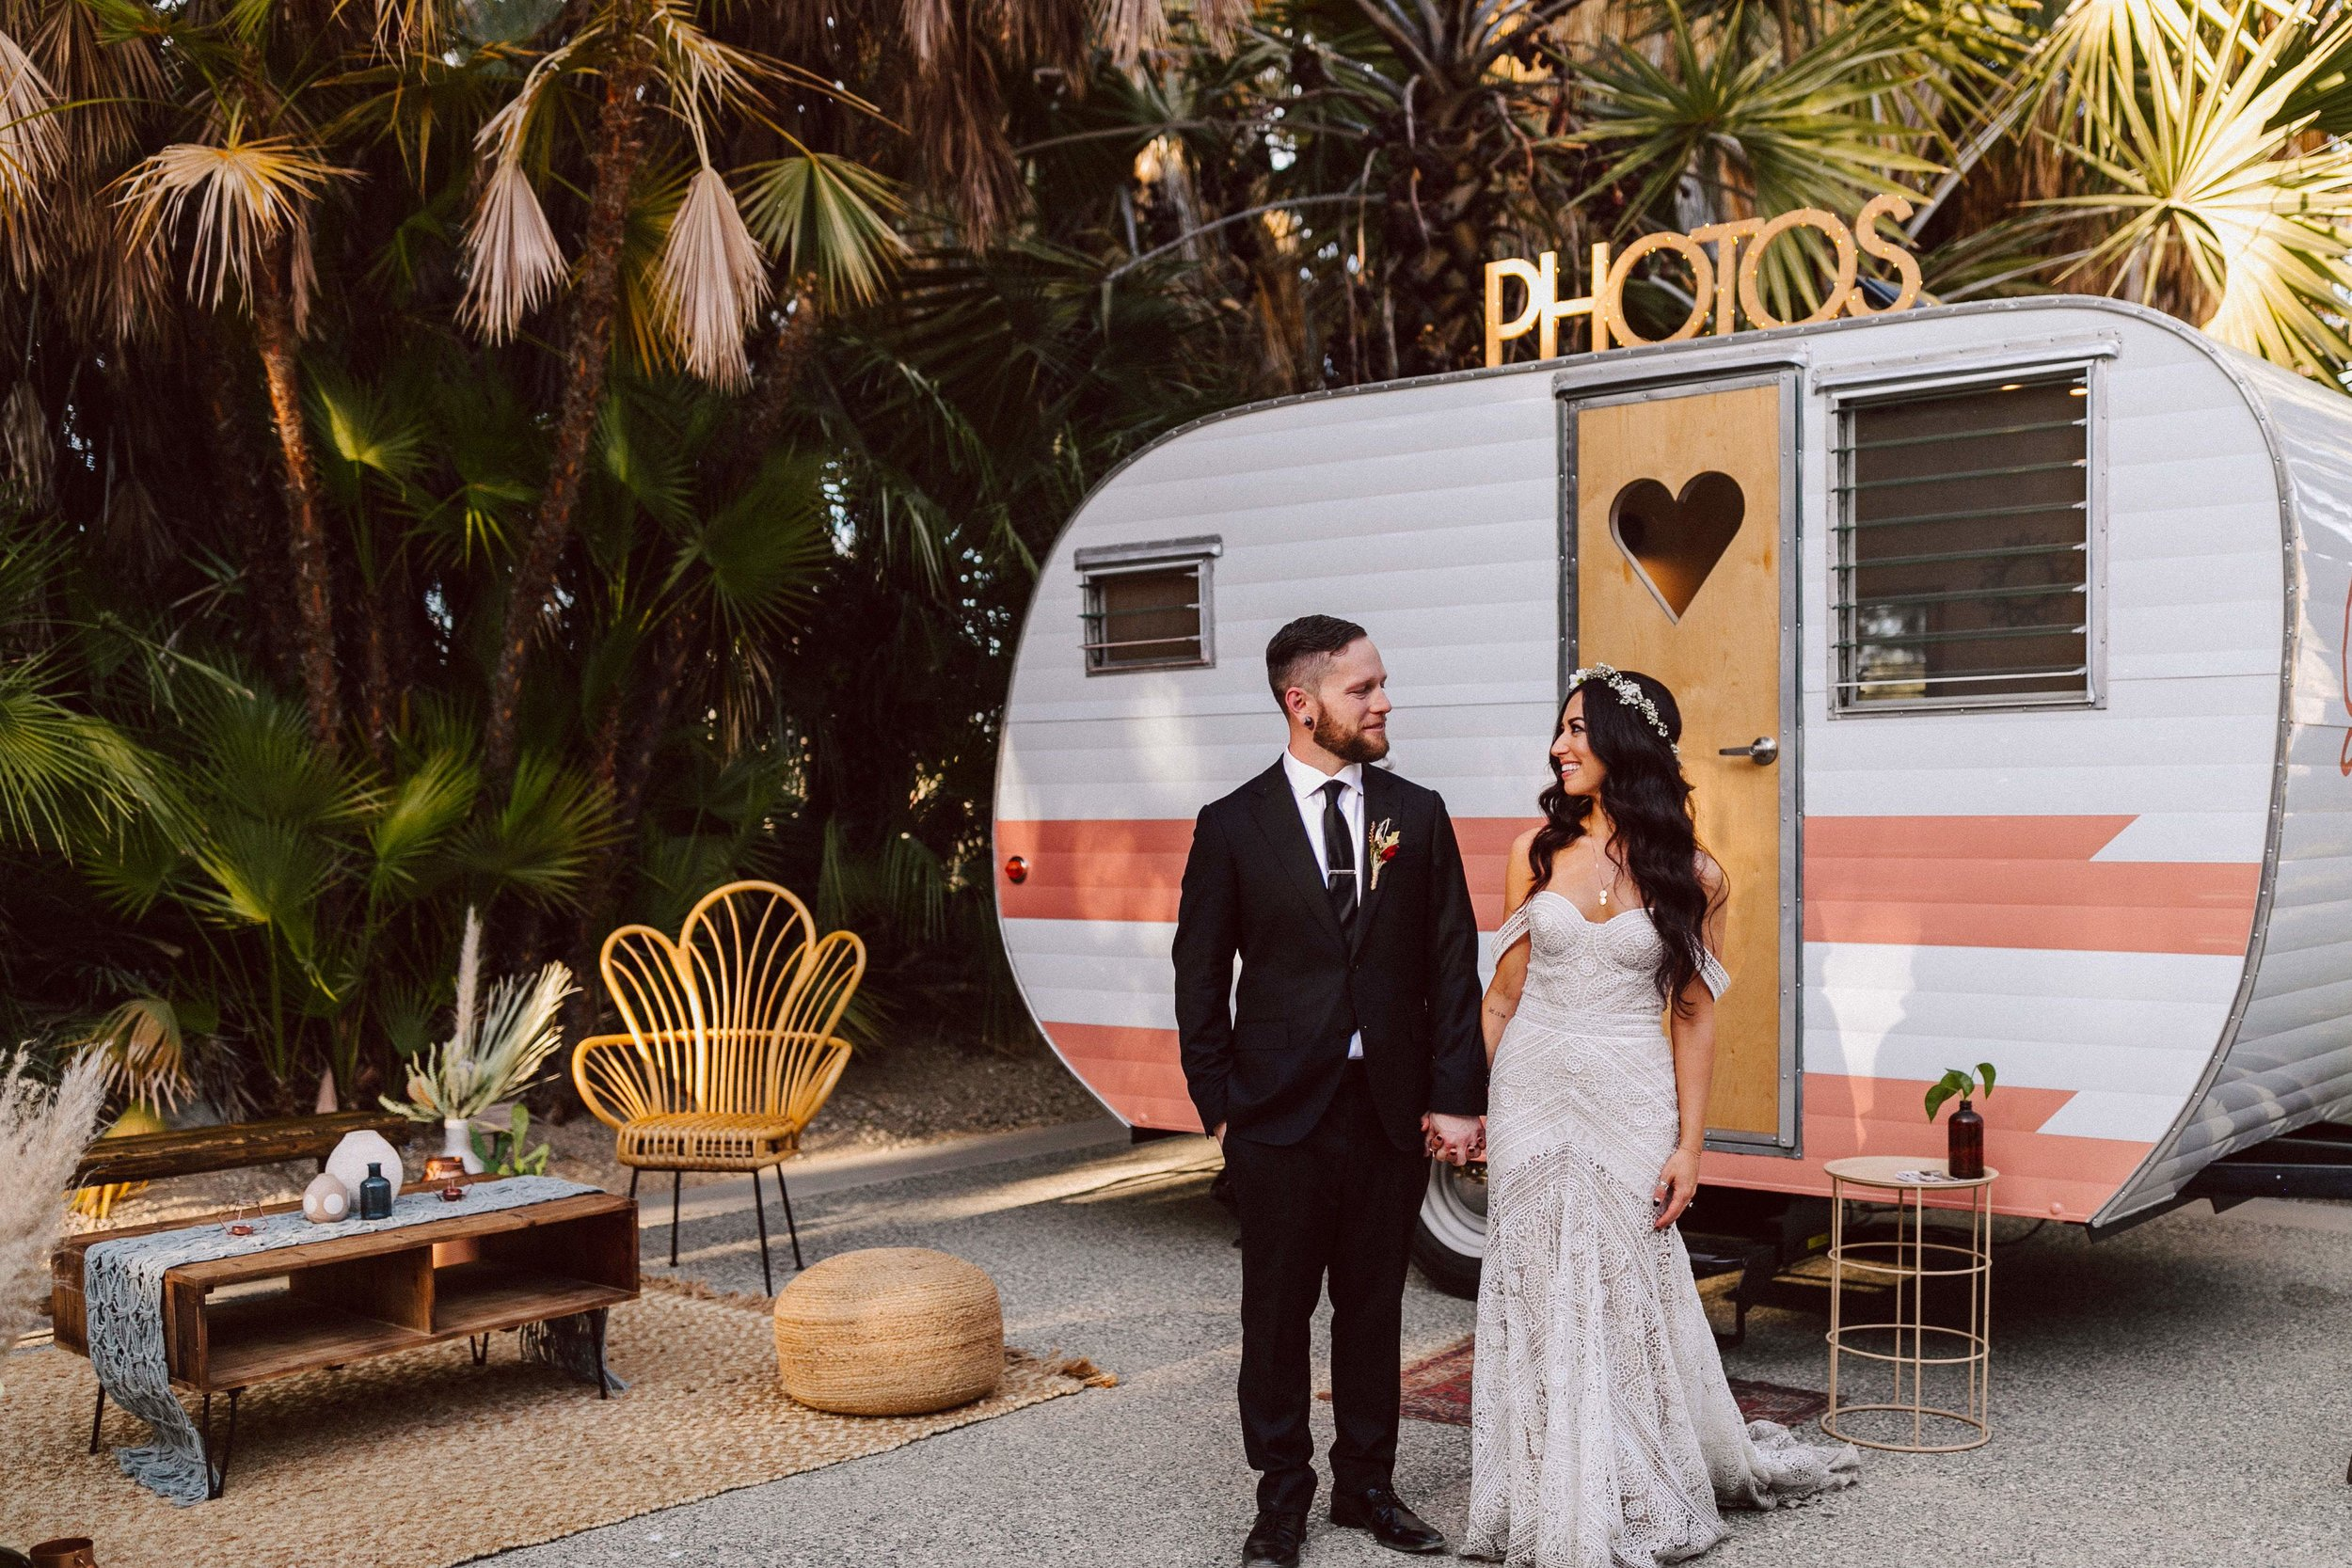 Photo Booth Camper Trailer-wedding-zoo2.jpg